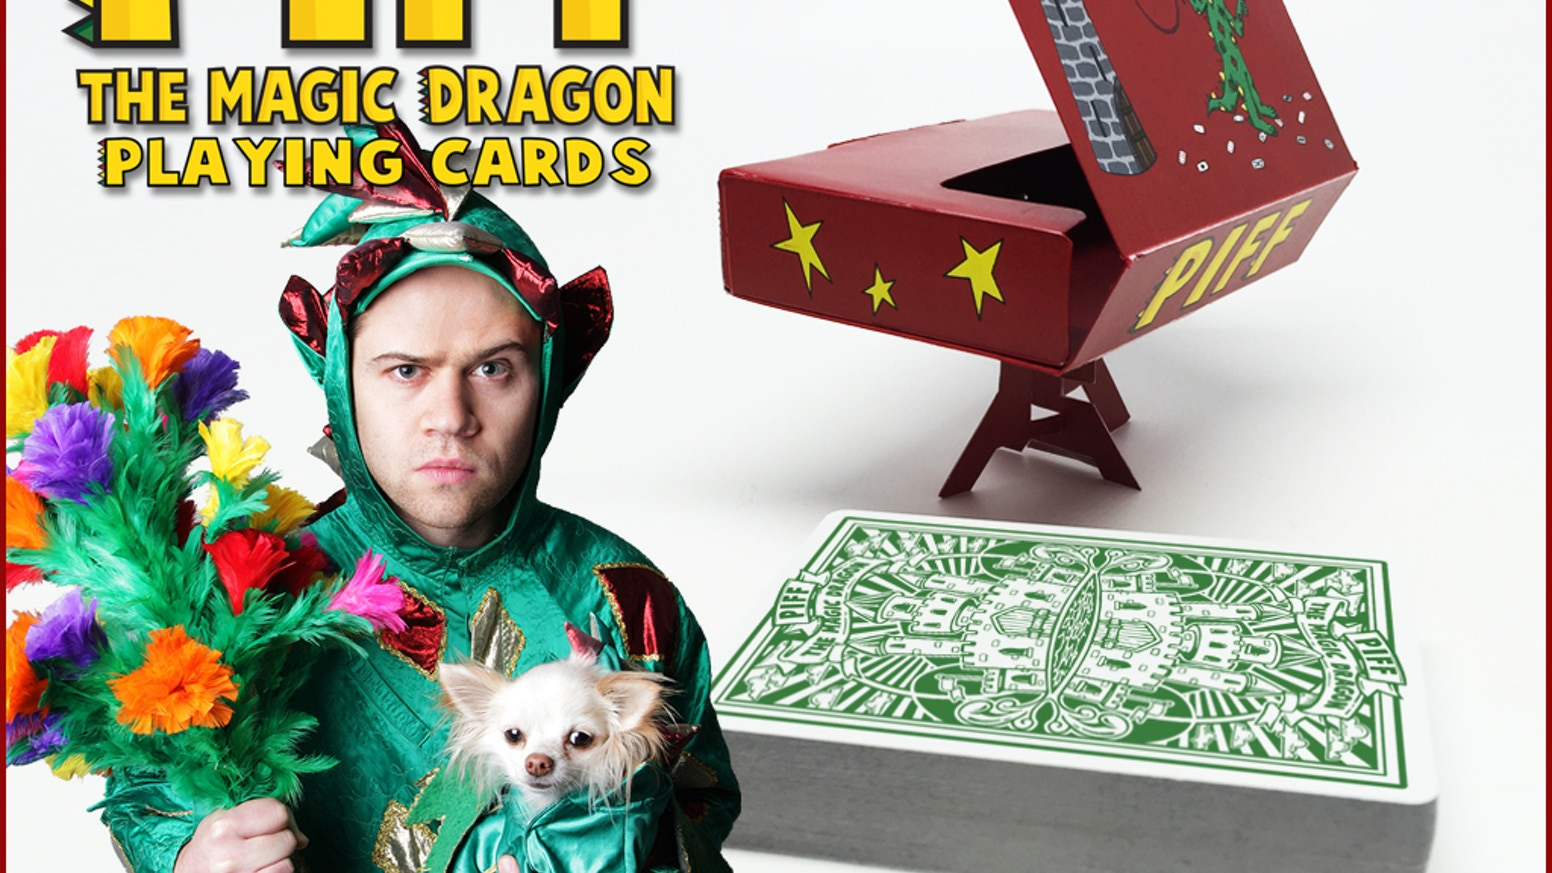 From the Greatest Magic Performing Dragon of All Time, comes the Greatest Deck of Playing Cards...of All Time!